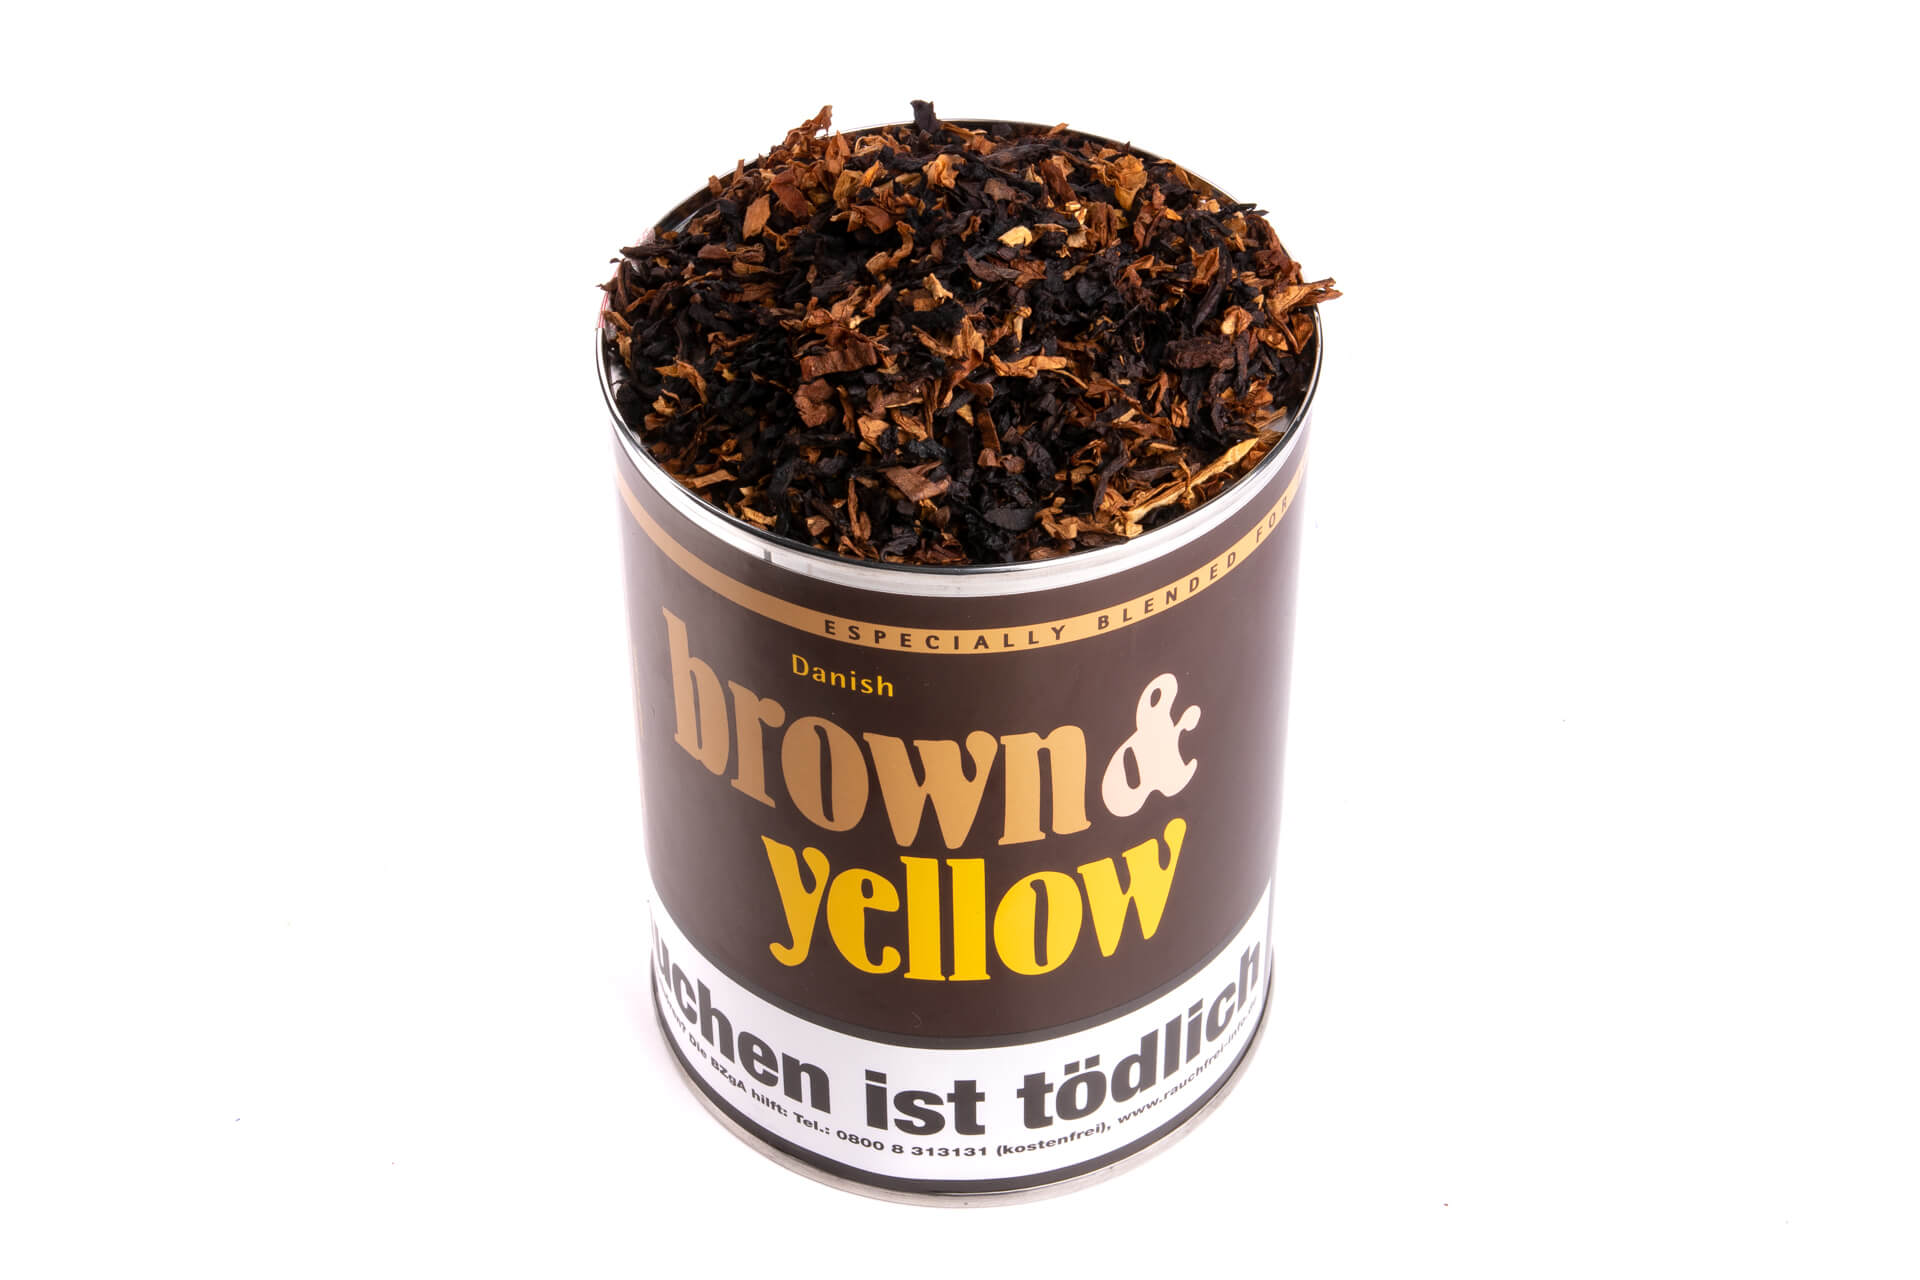 Brown and Yellow 200g Dose